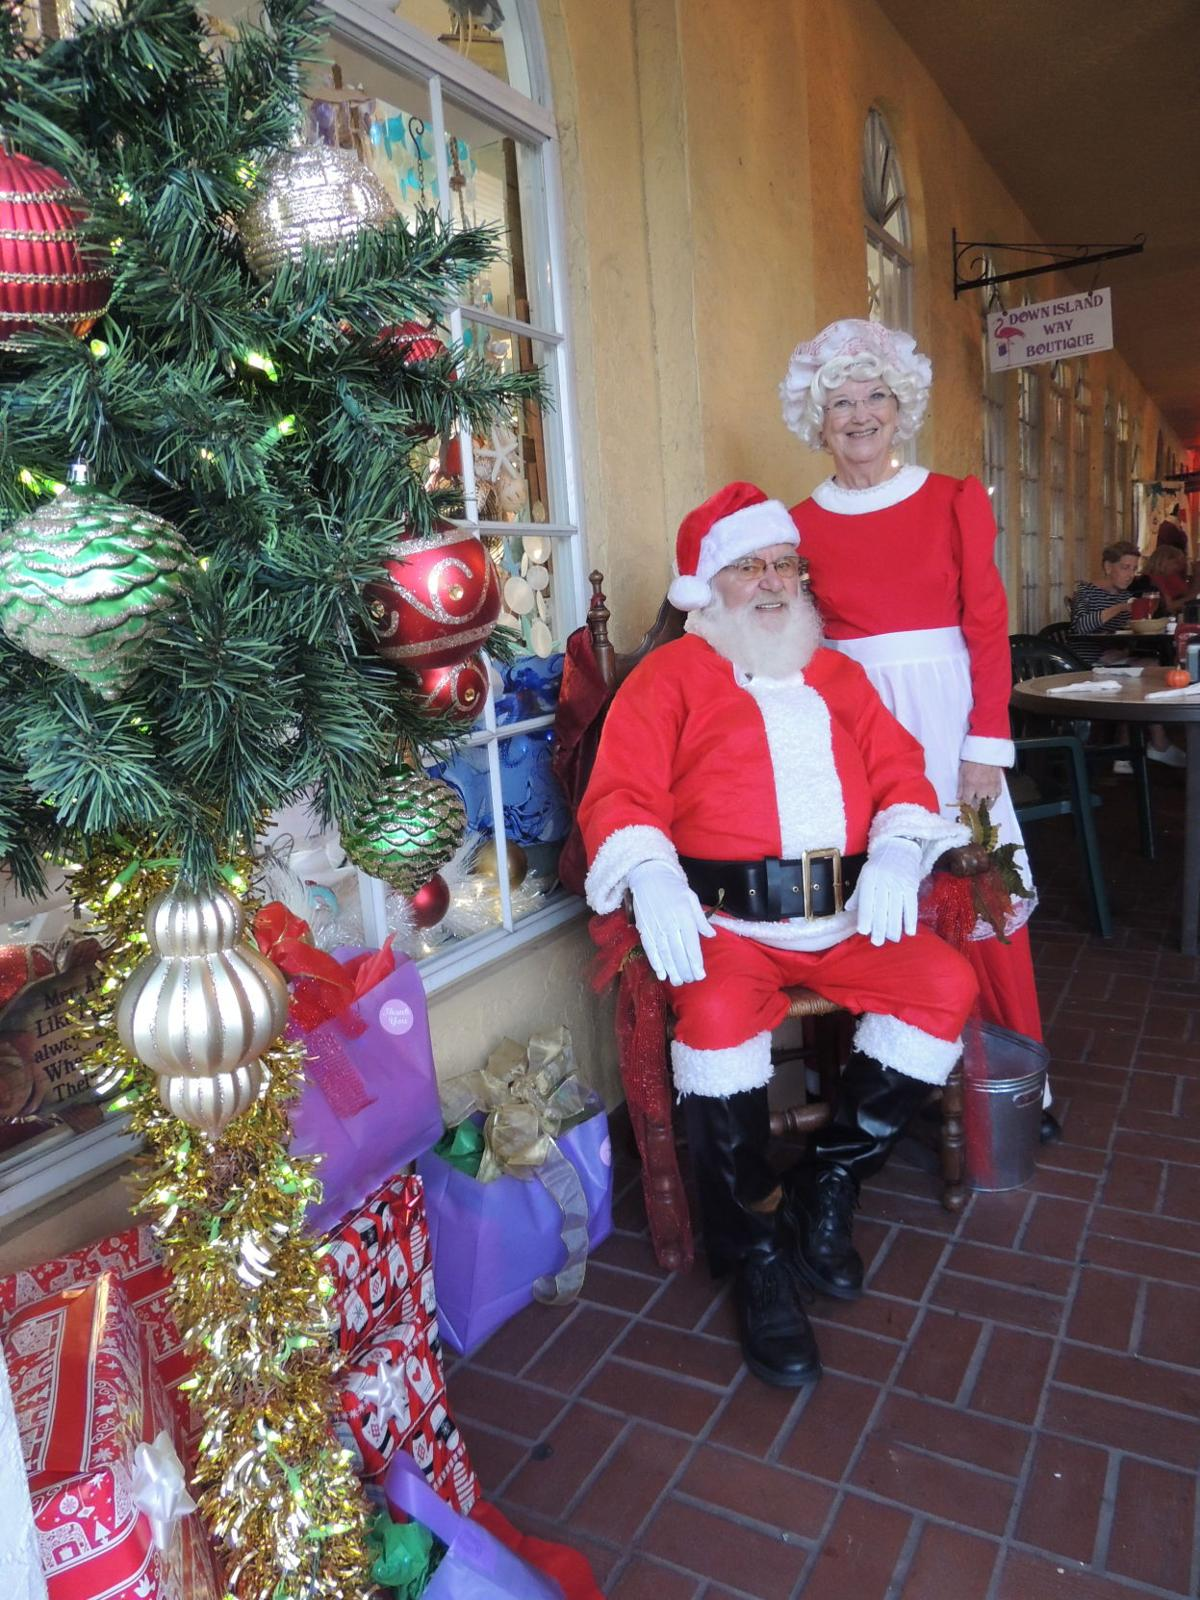 Ring in the holidays at Venice's Christmas Walk